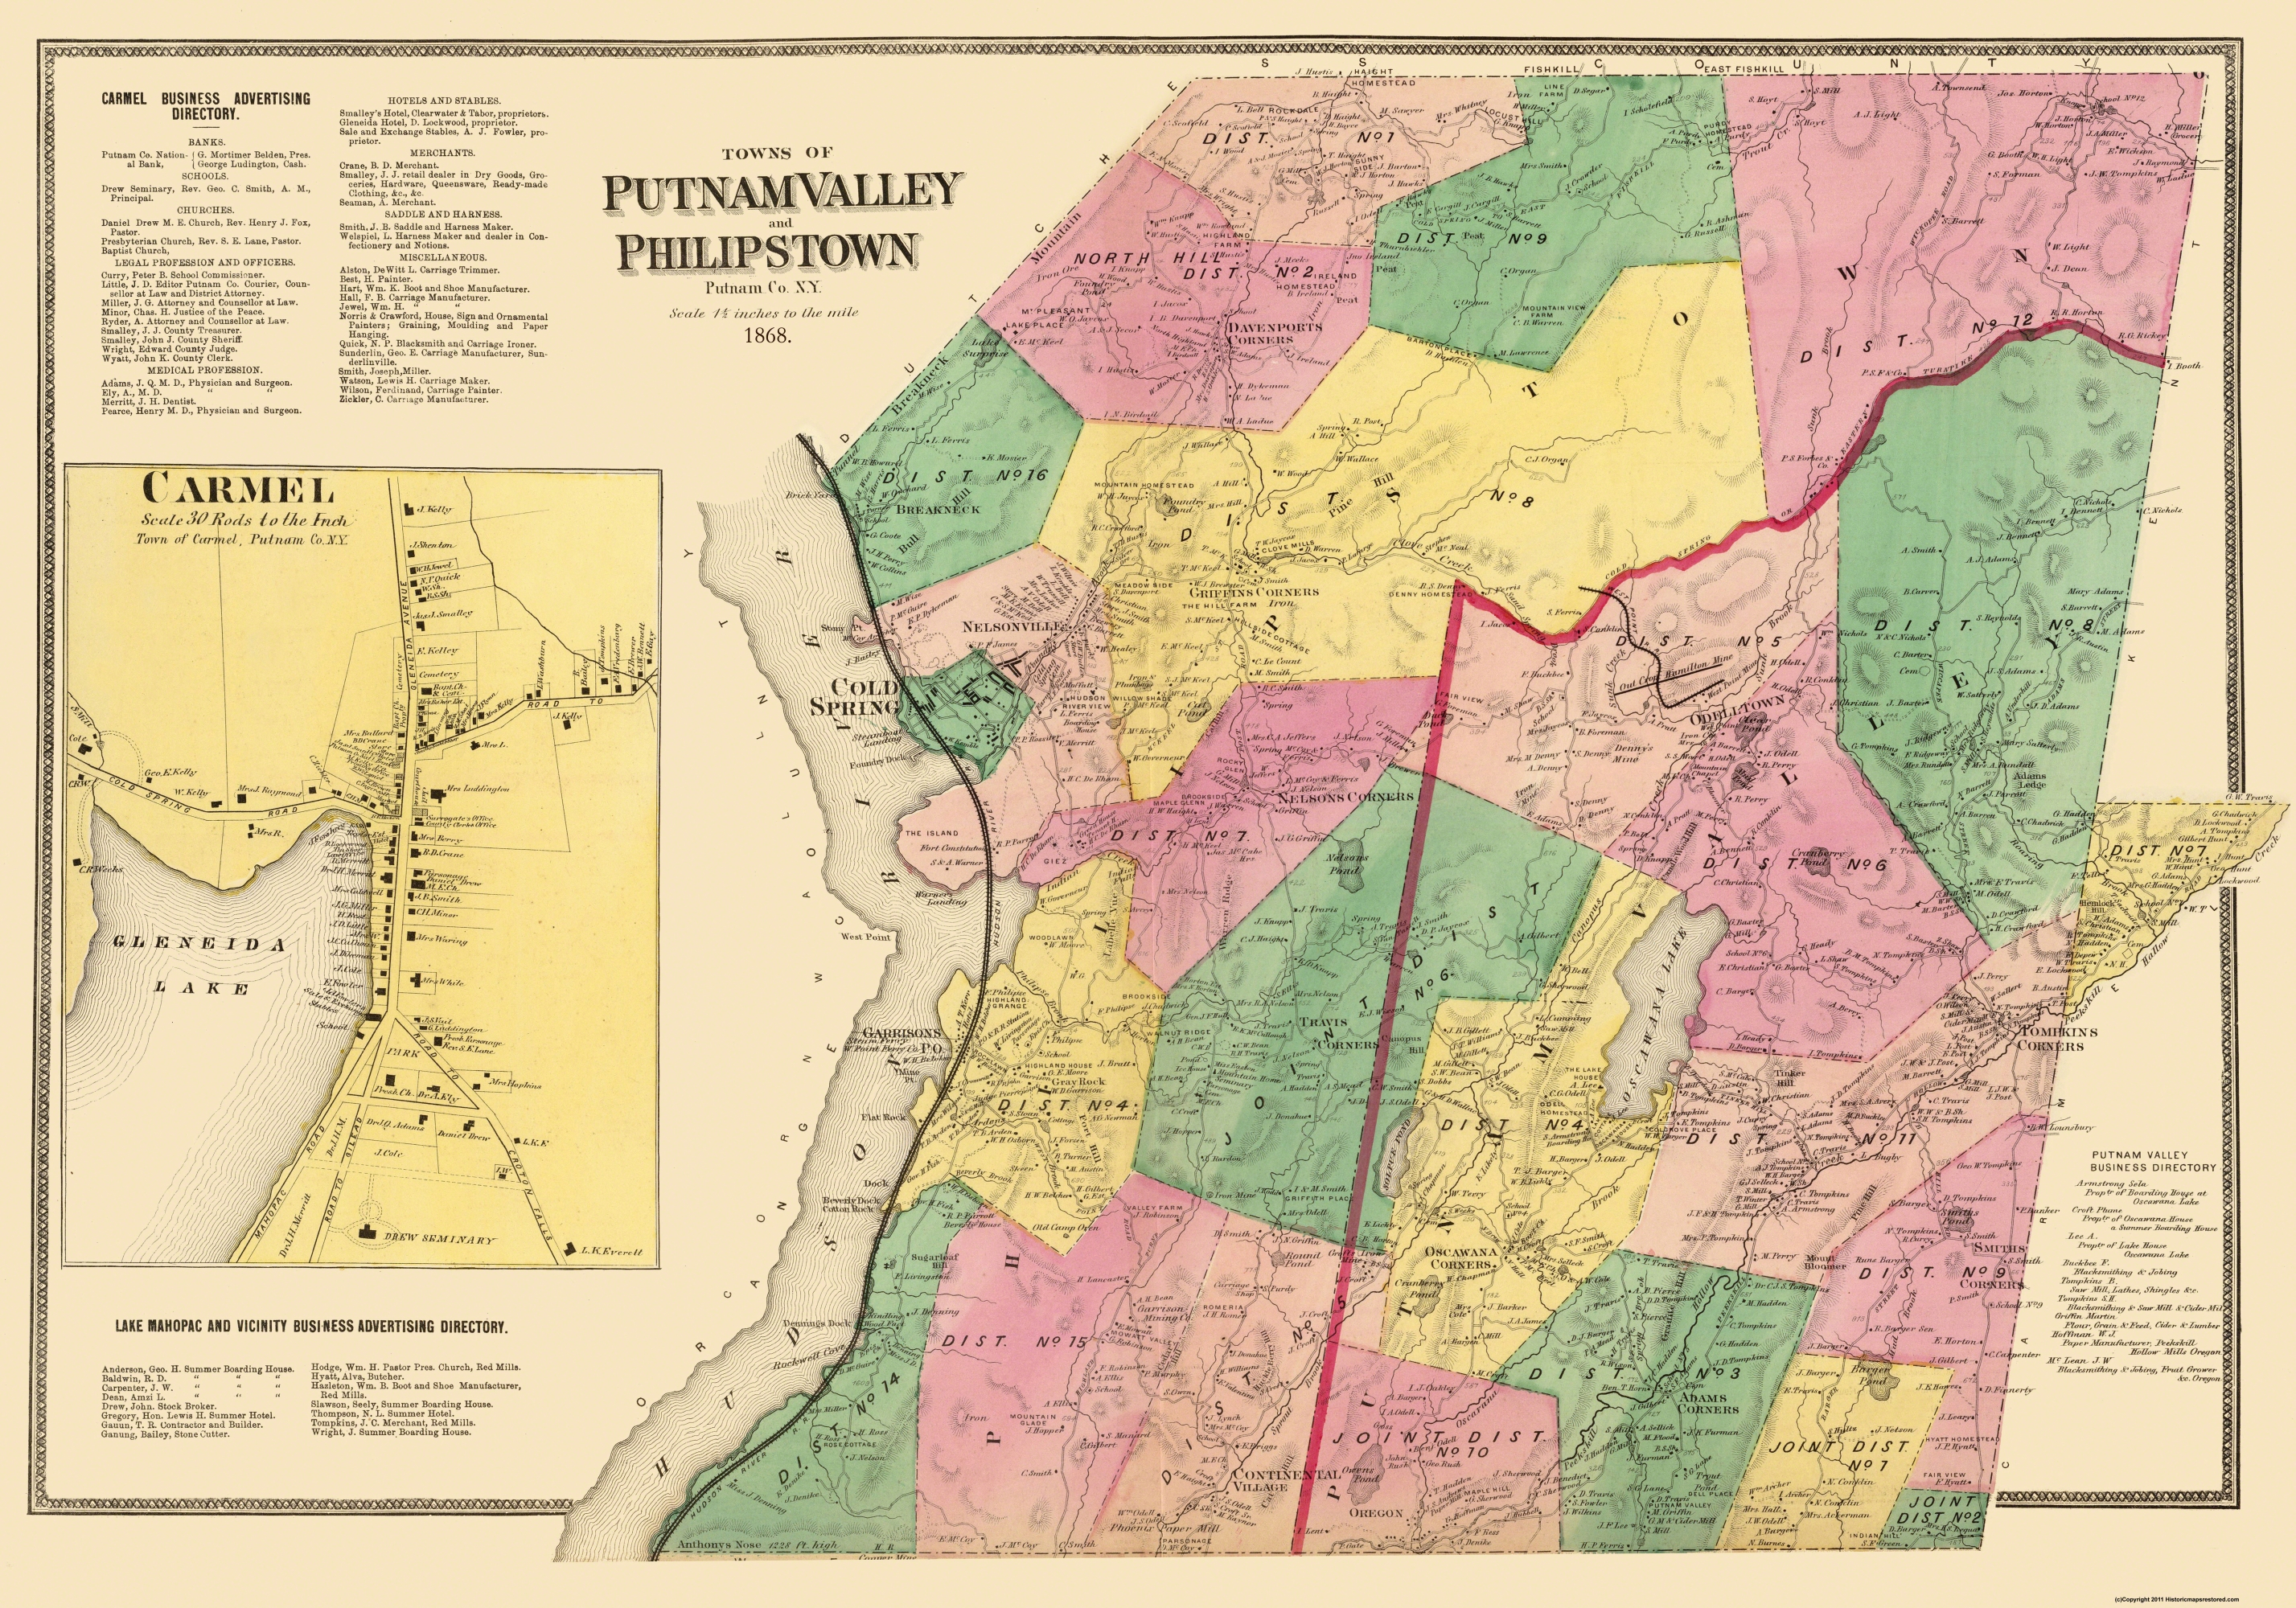 Old City Map - Putnum Valley, Phillipstown New York 1868 City Map Of Ny on